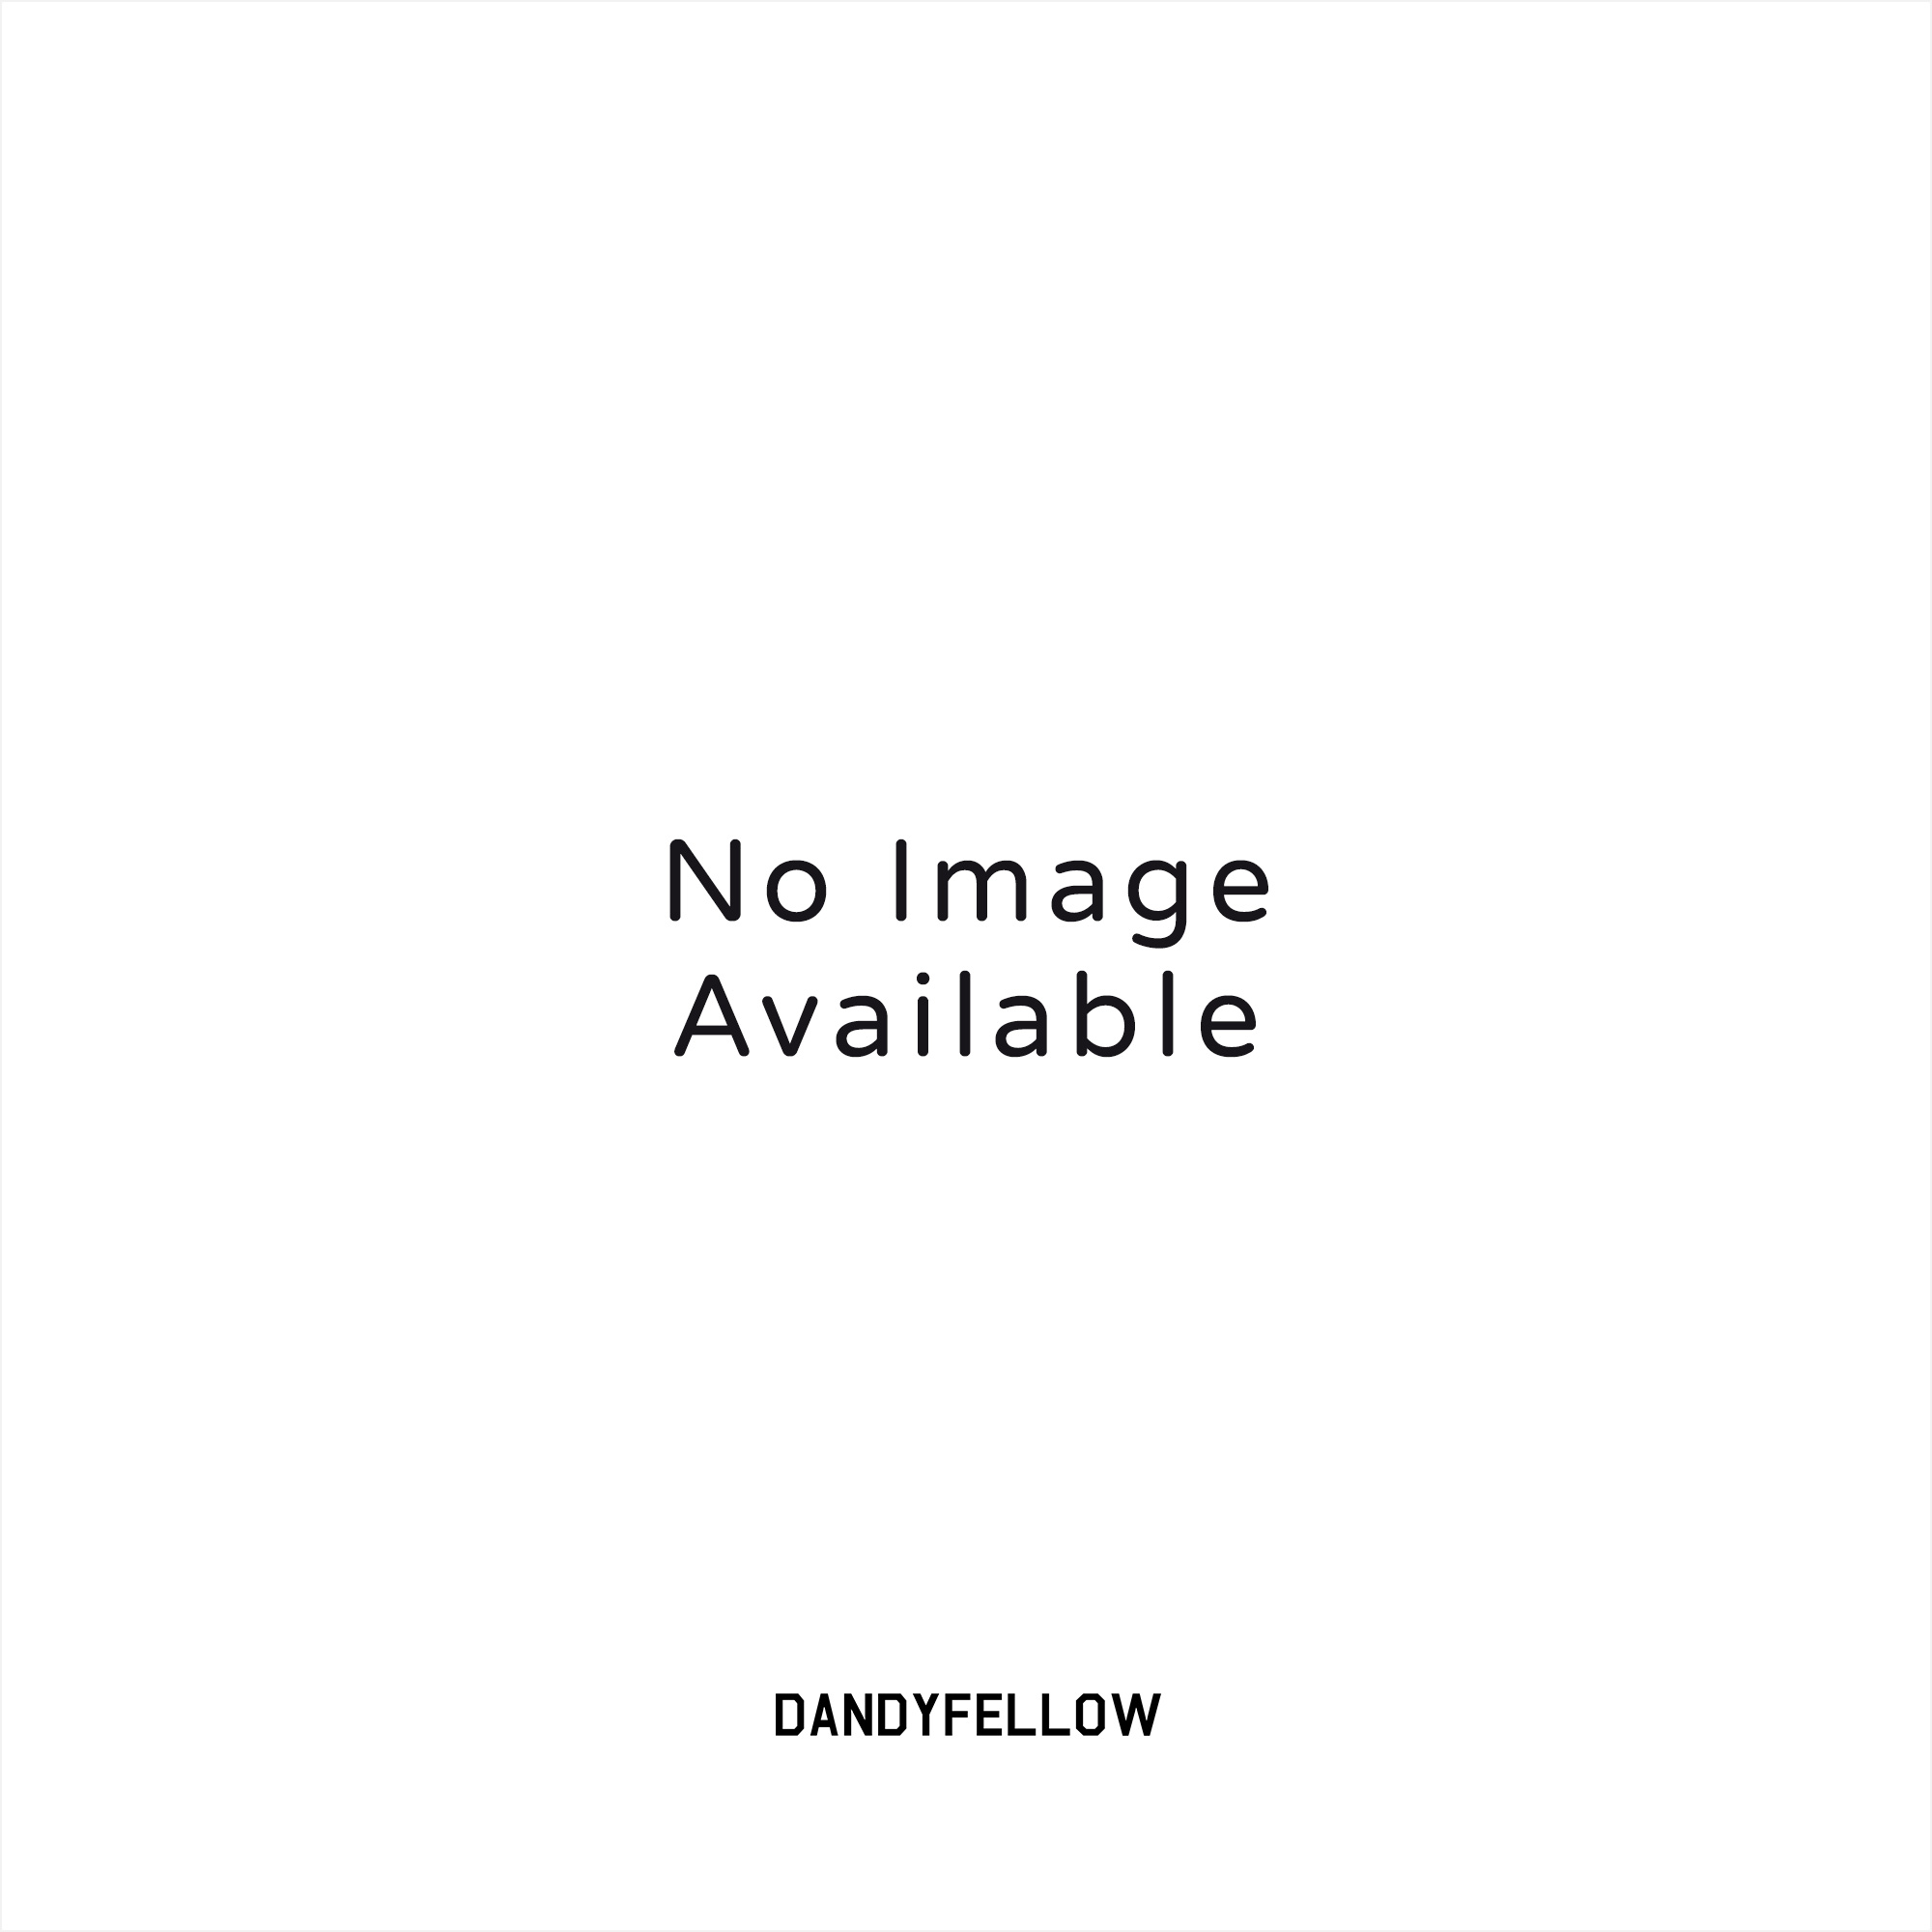 Edwin ED-80 Made in Japan Light Used Selvage Denim Jeans